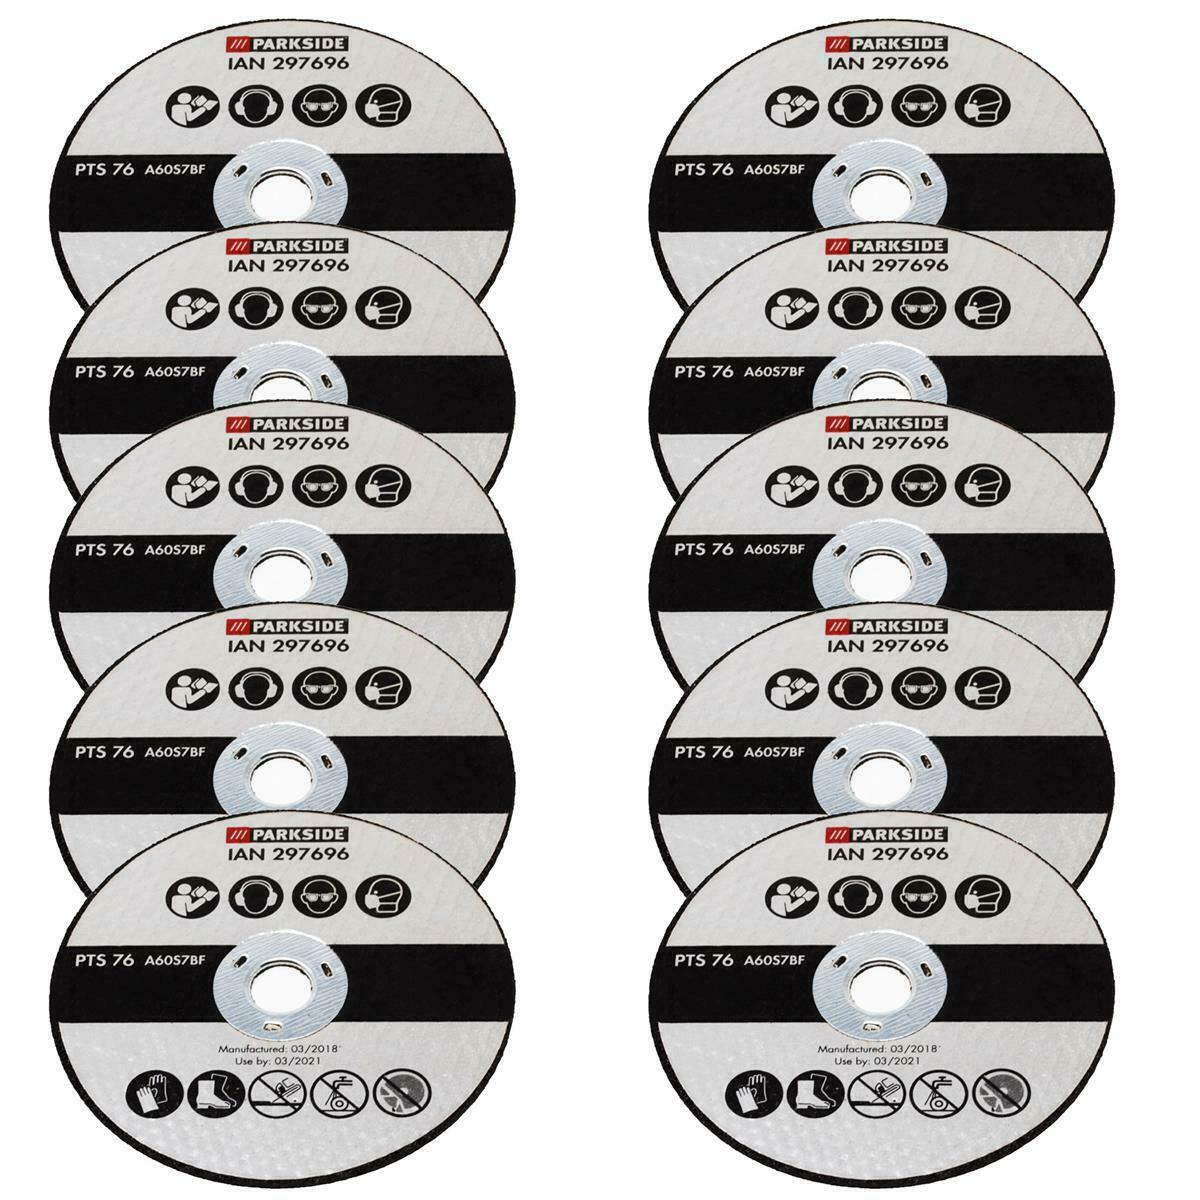 10 Cutting Discs for Parkside Cordless Angle Grinder pwsa 12 B1 LIDL IAN 334002